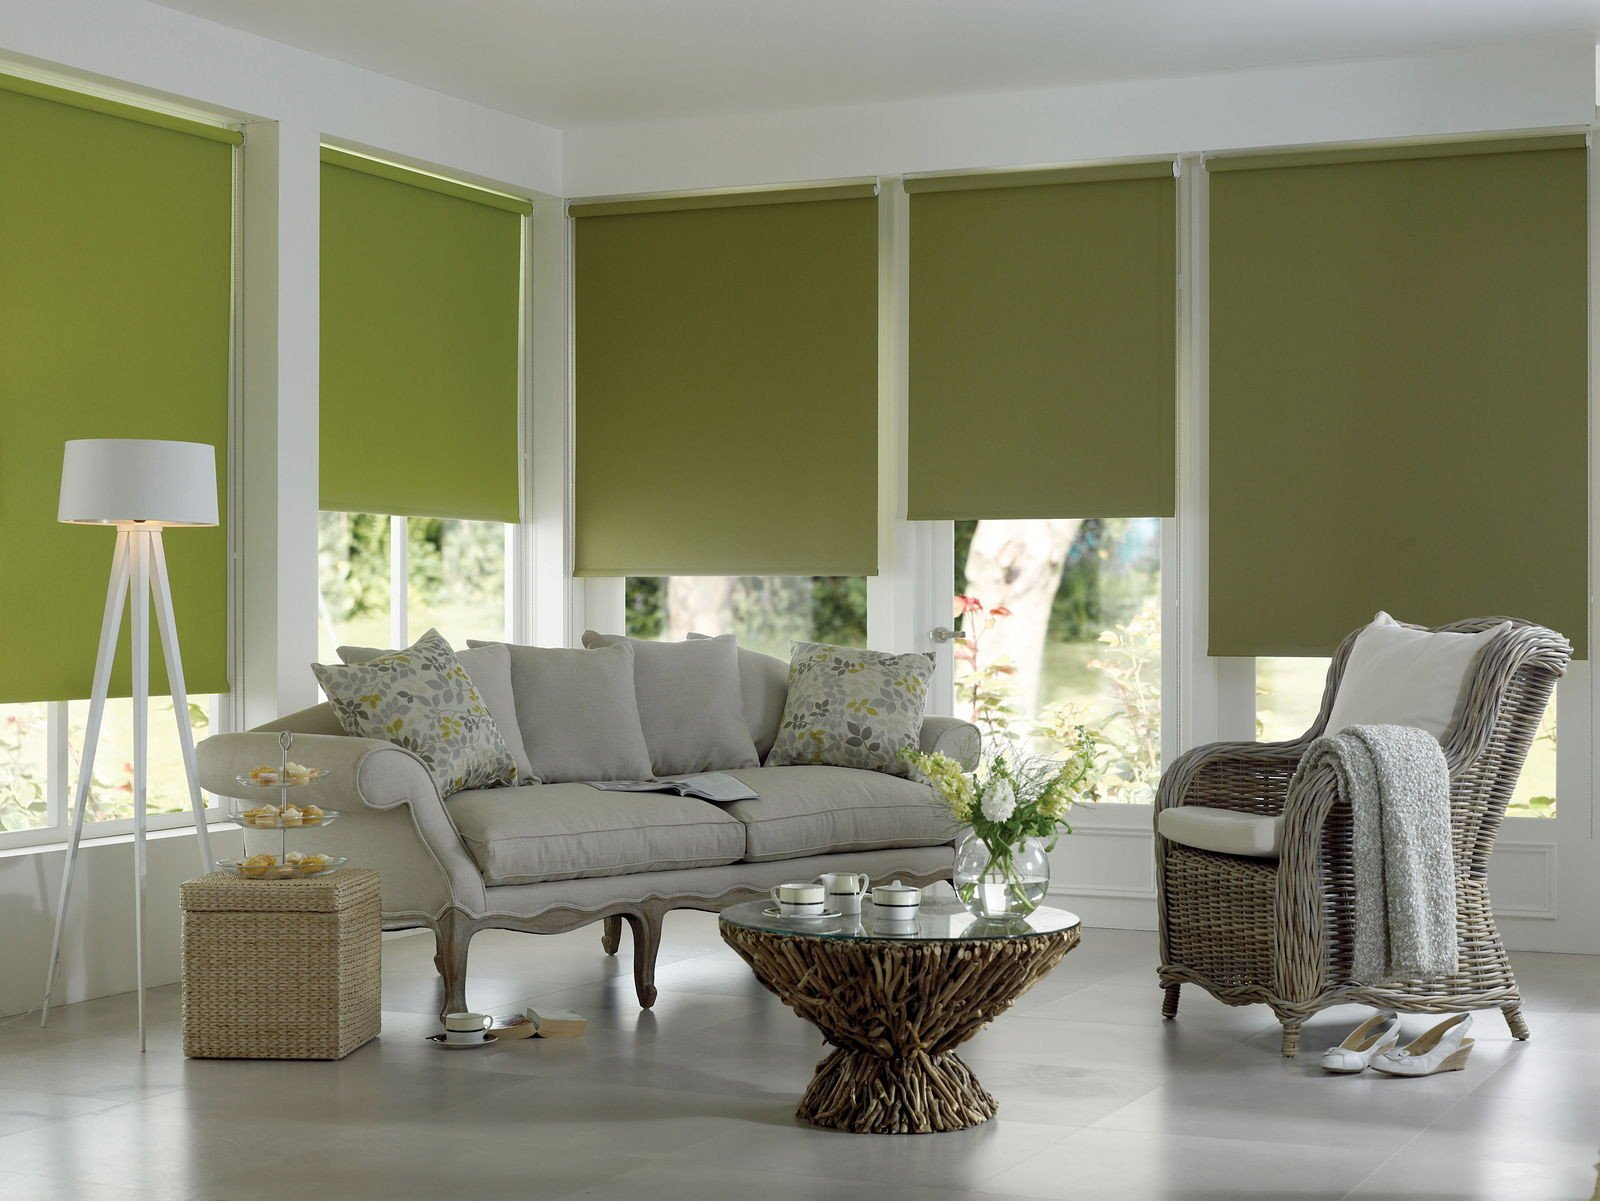 Living Room Curtains Ideas Fresh Living Room Curtains the Best Photos Of Curtains Design assistance In Selection